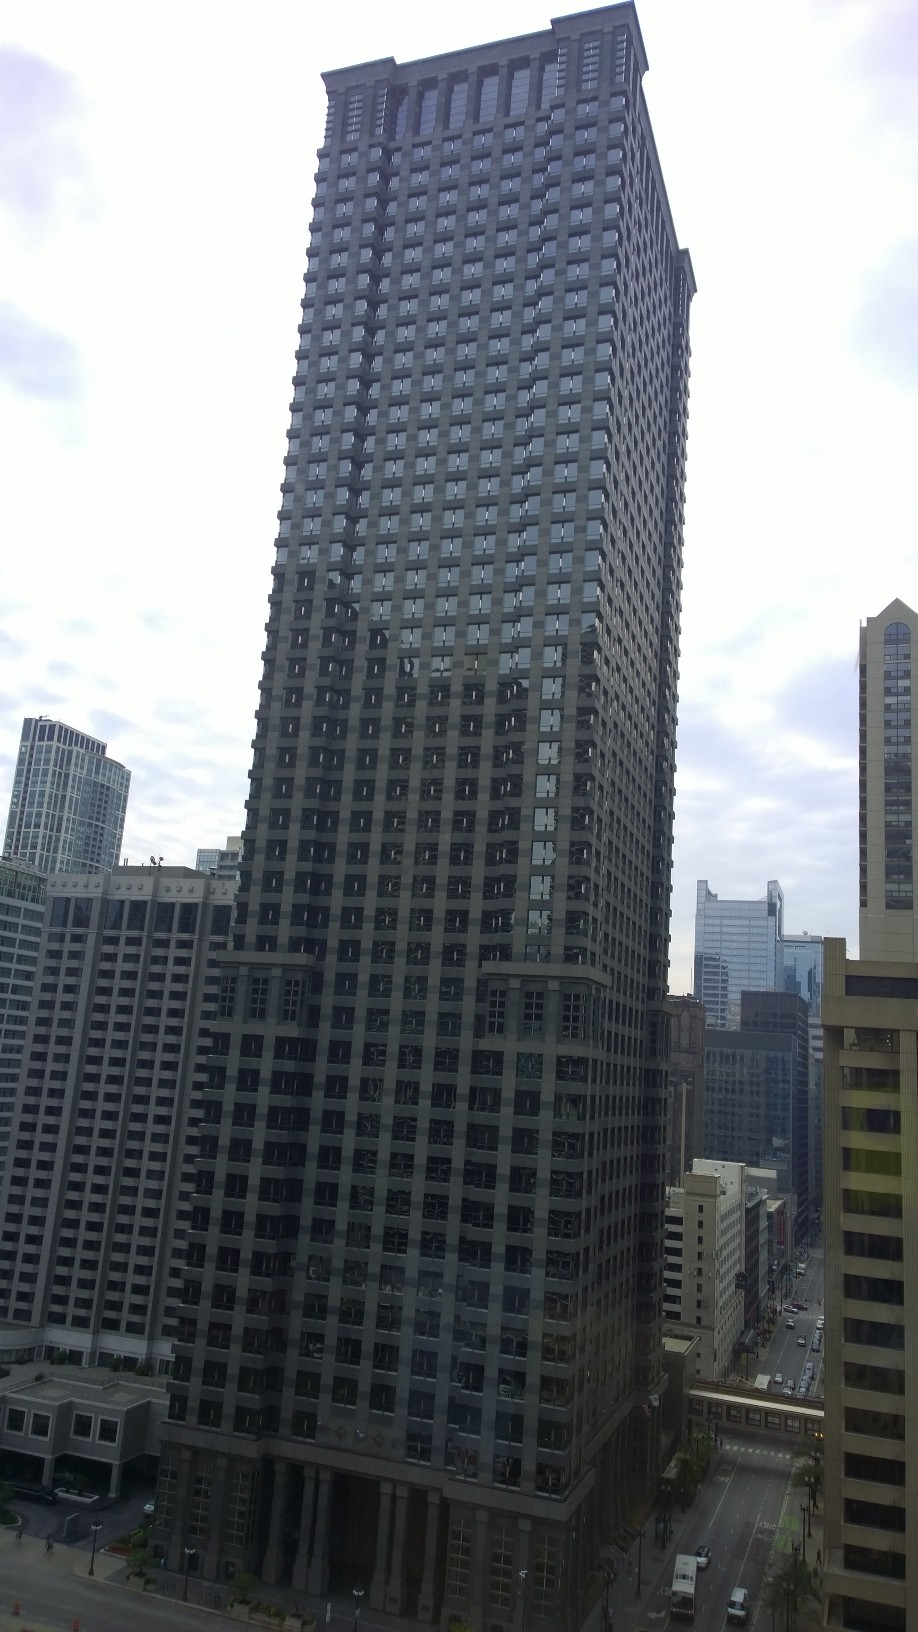 The Leo Burnett Building and Leo Burnett Worldwide Headquarters at 35 West Wacker Drive at North Dearborn Street in the Chicago Loop